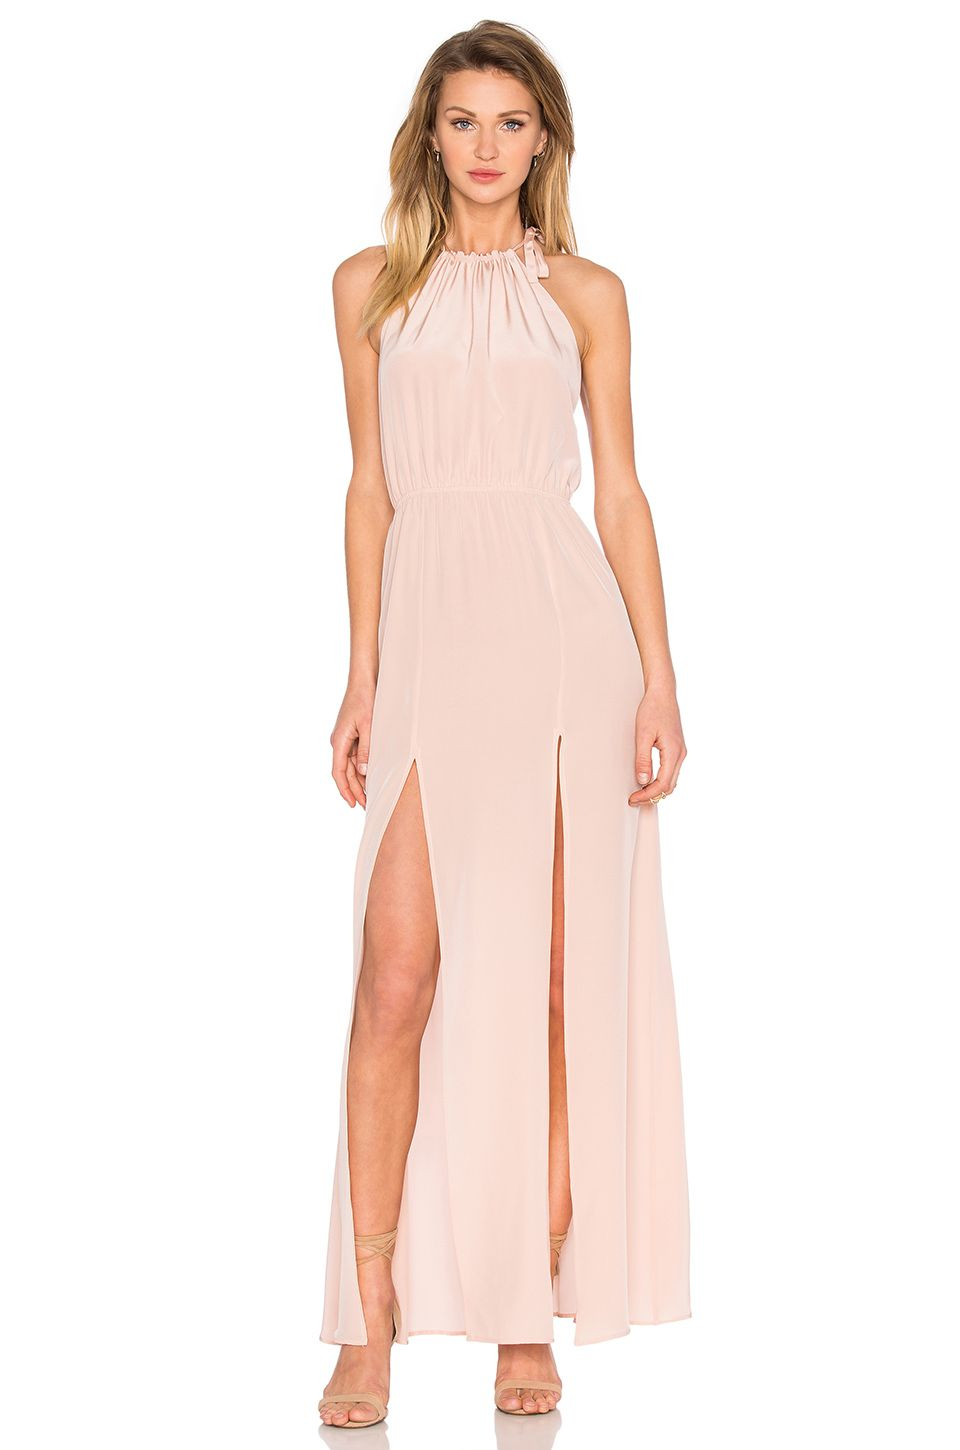 Stonecoldfox onyx gown in dusty rose revolve 415 maxi stonecoldfox onyx gown in dusty rose revolve 415 stone cold foxfloral dressesbridal ombrellifo Choice Image